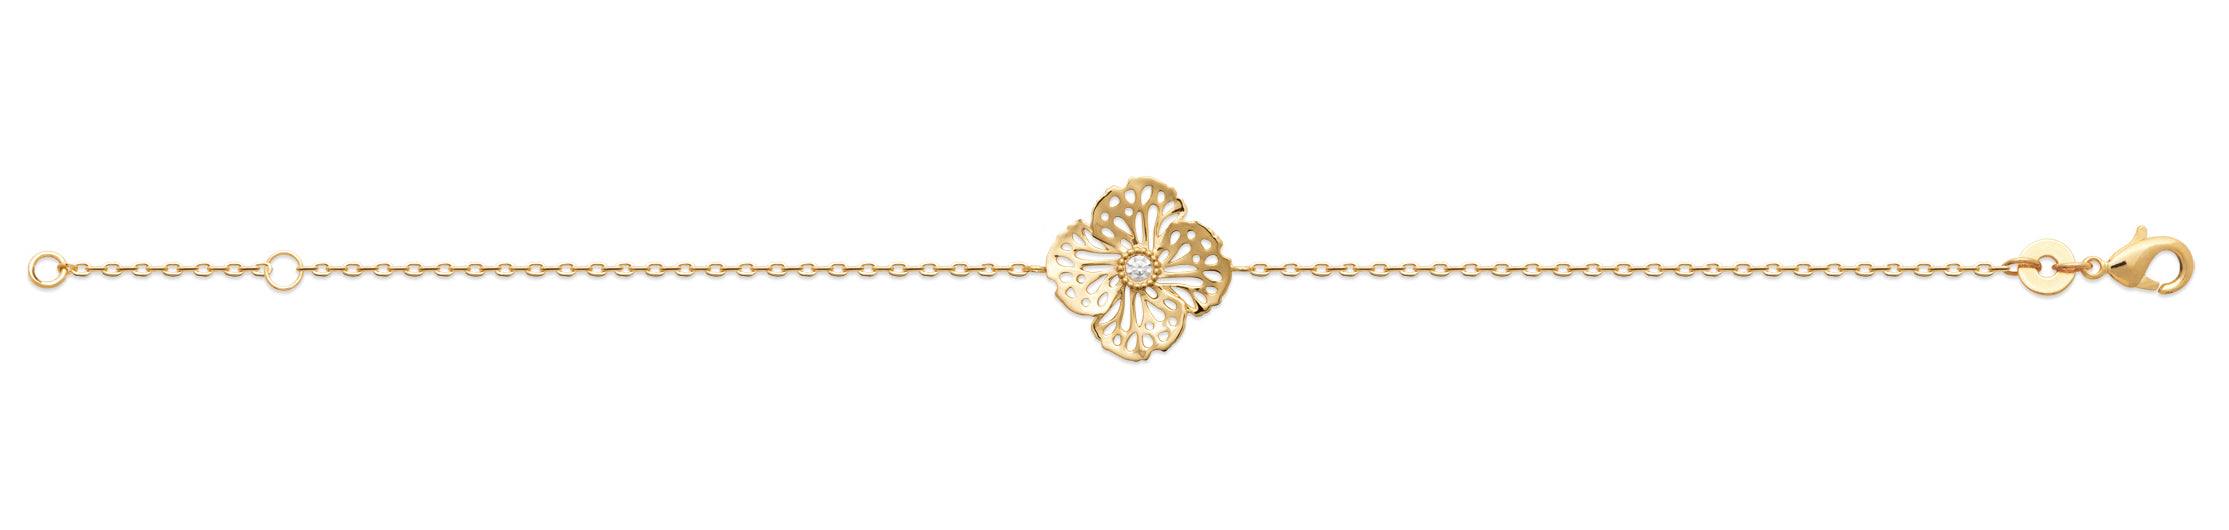 Gold Flower with Crystal Heart Bracelet